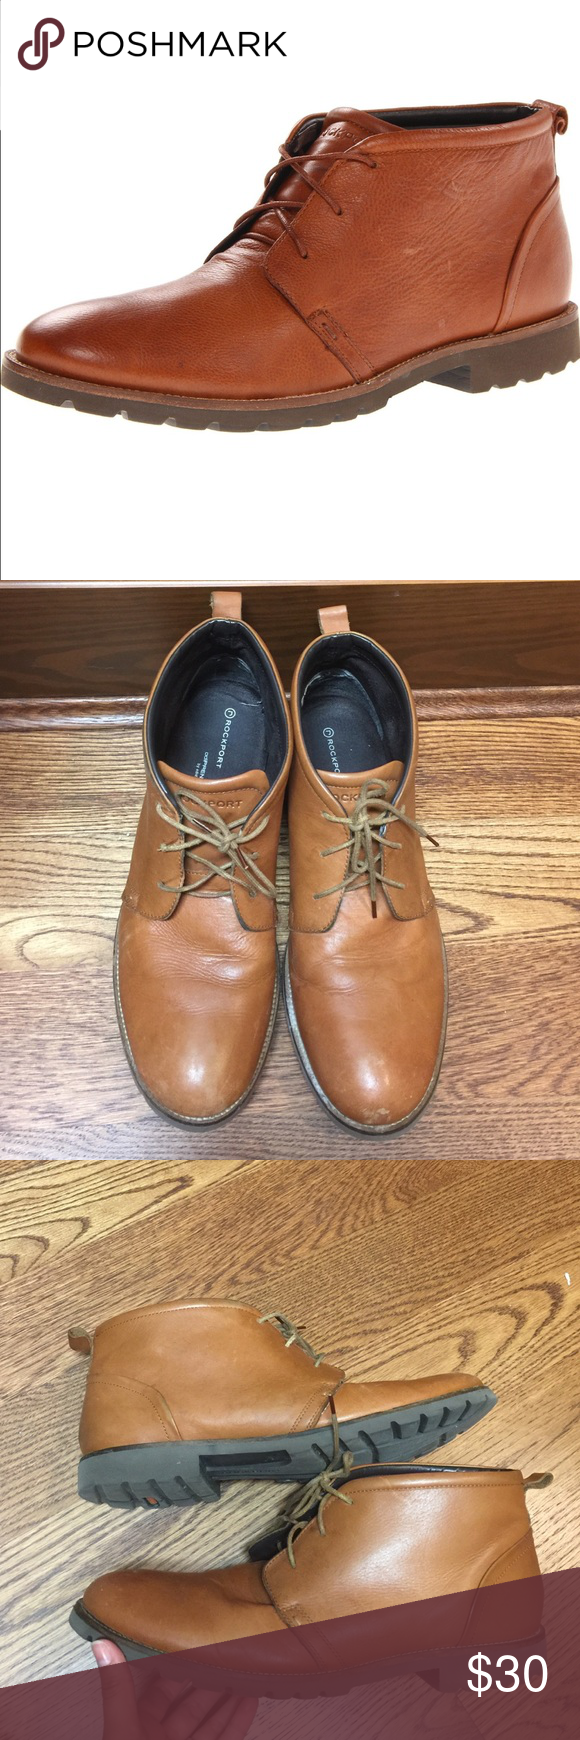 Rockport Men's Charson Lace Up Chukka Boots Good used condition. Scuffs mostly around the toe area. Great for the fall or winter. True to size. Rockport Shoes Chukka Boots